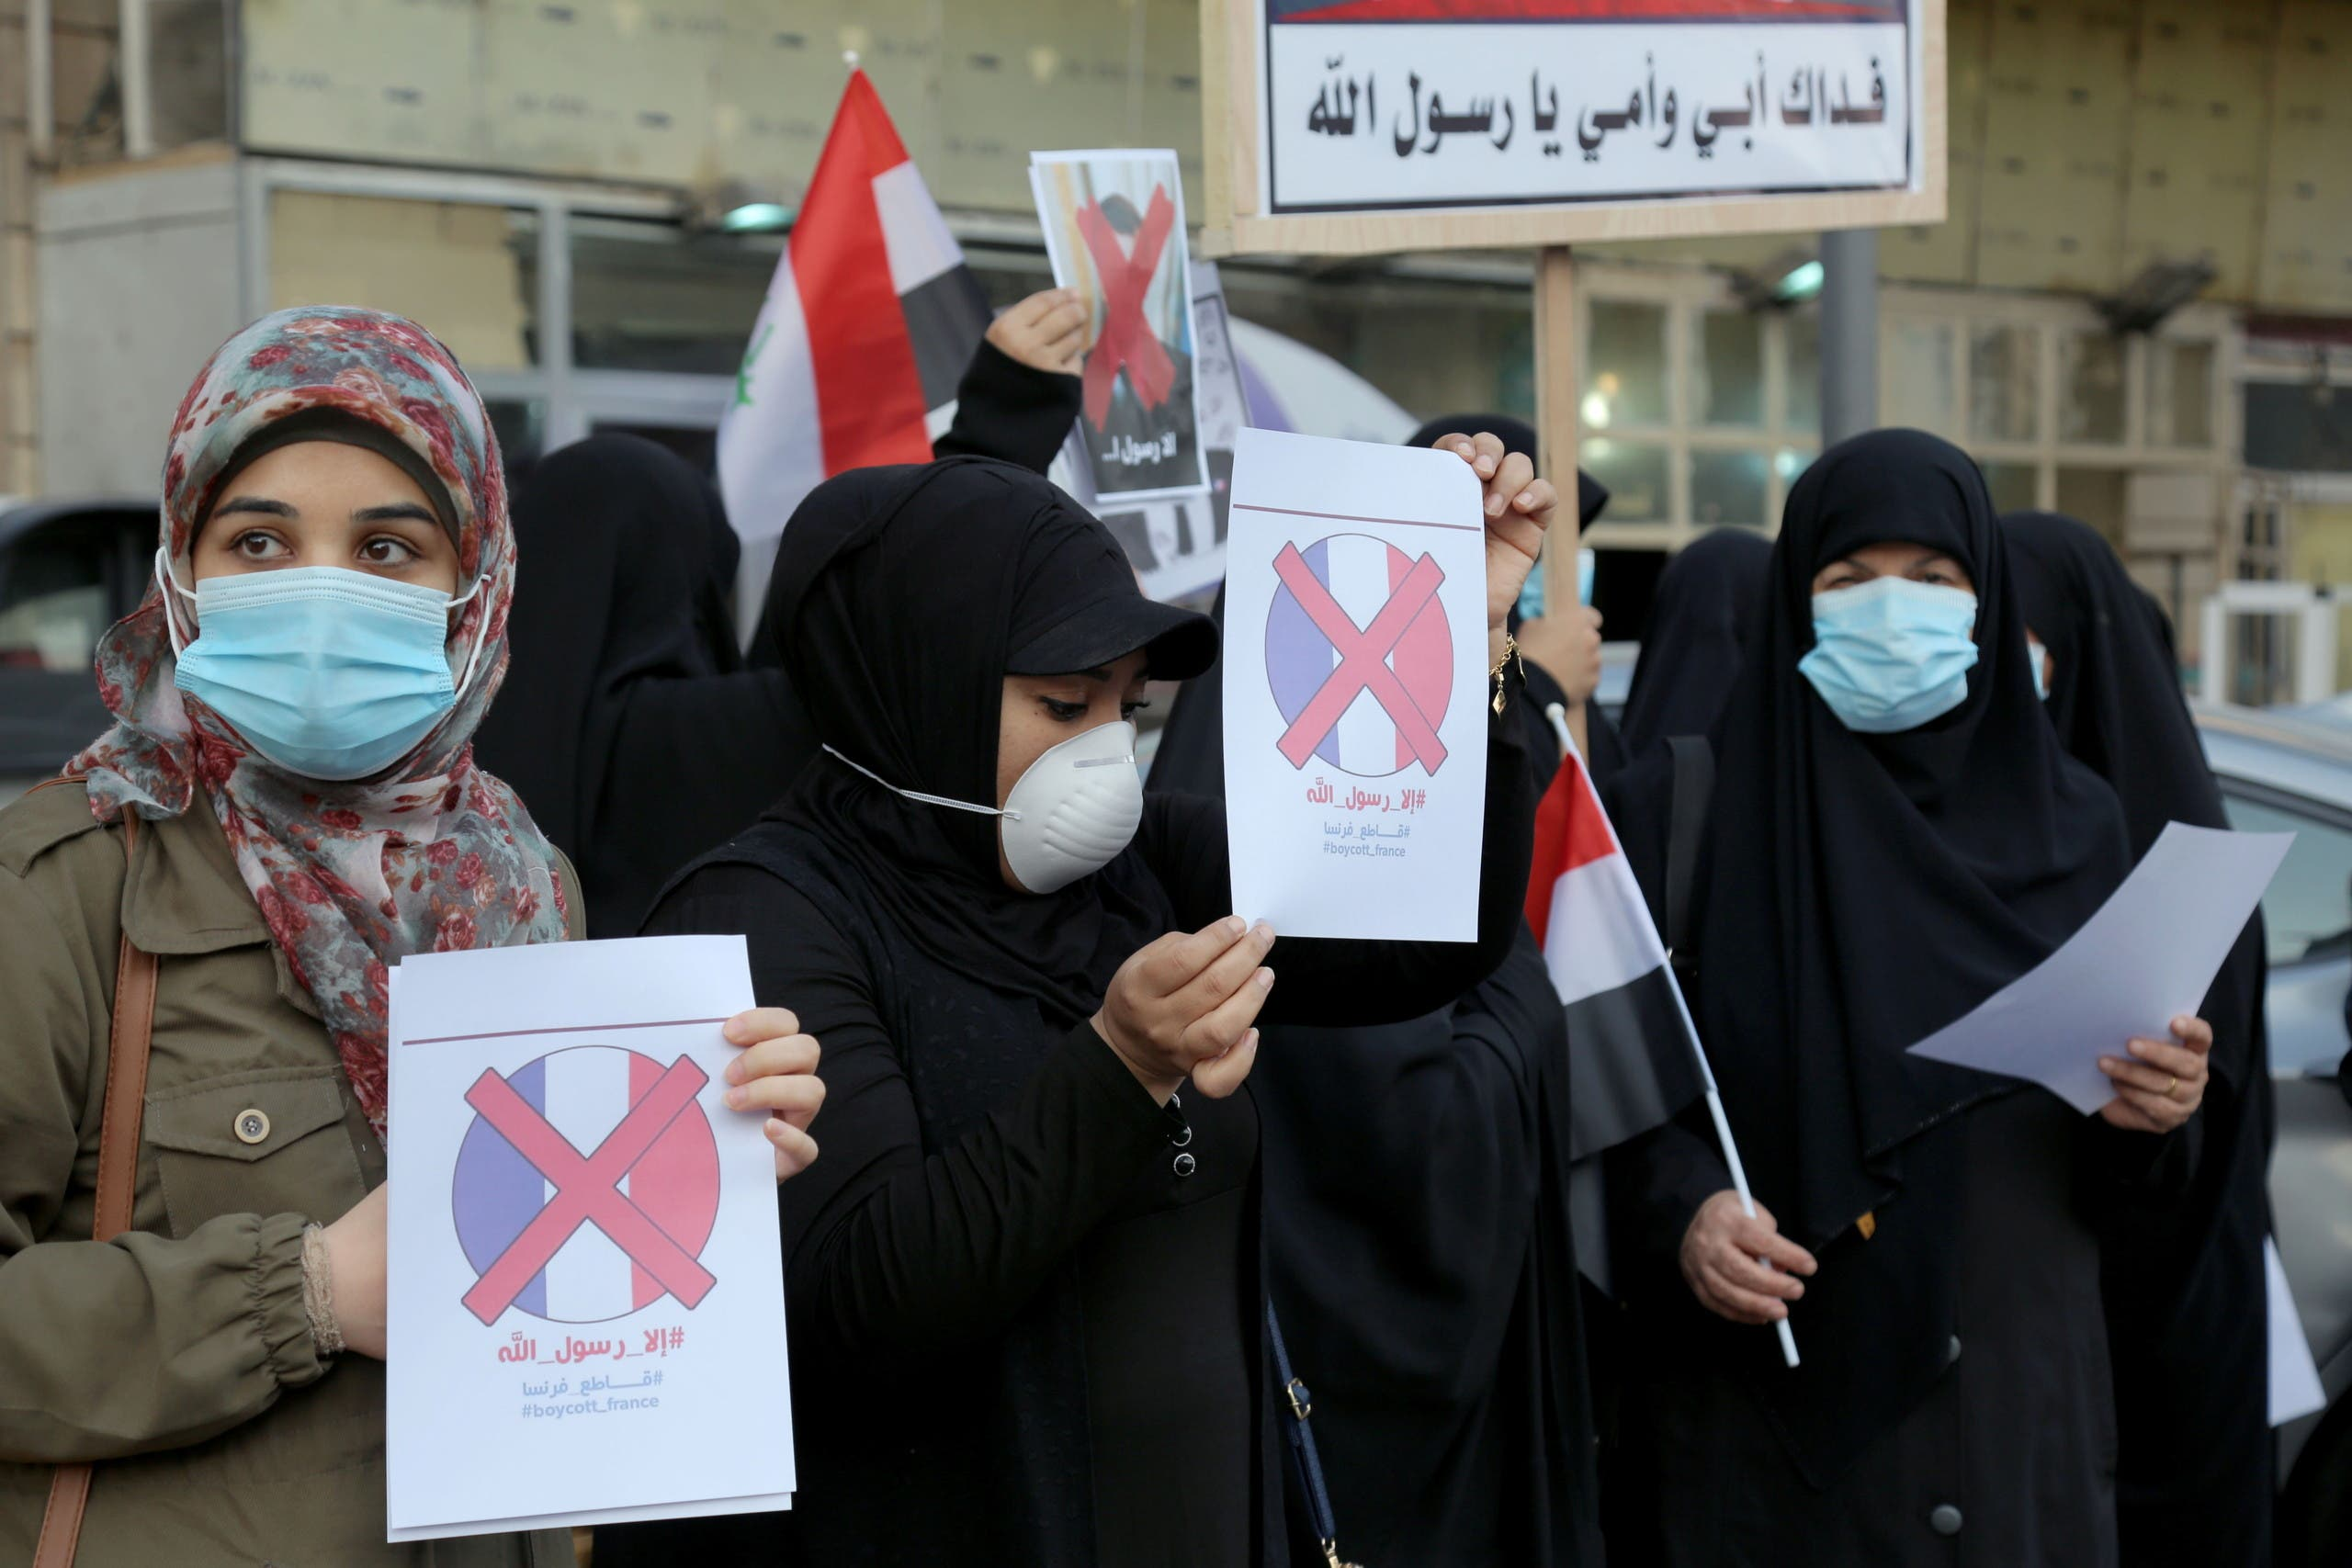 Iraqi people gather during a protest against the publications of a cartoon of Prophet Mohammad in France and French President Emmanuel Macron's comments, outside the French embassy in Baghdad, Iraq, October 26, 2020. (Reuters)